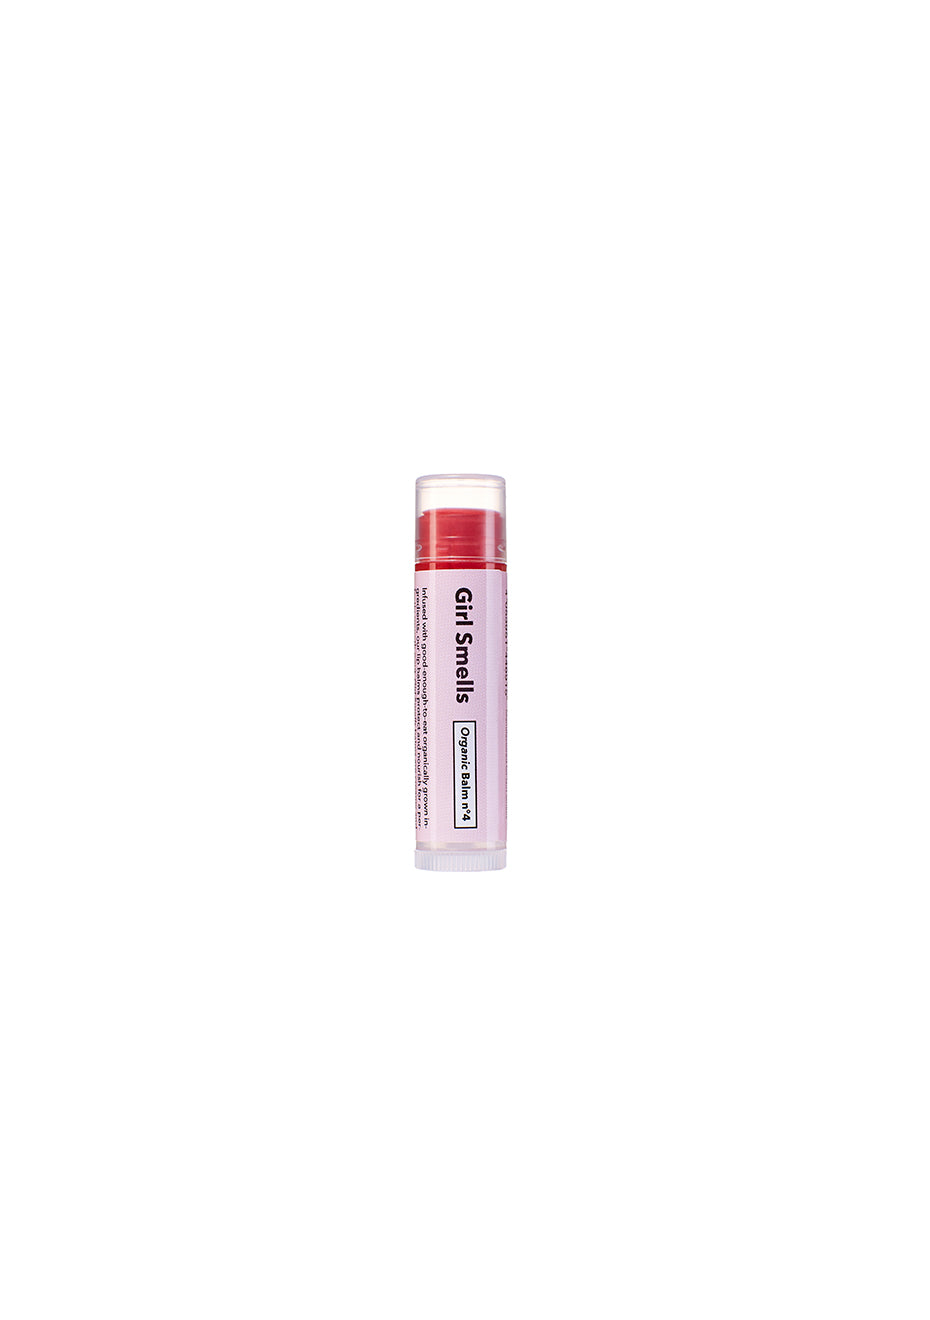 Organic Balm Tinted Red no.4